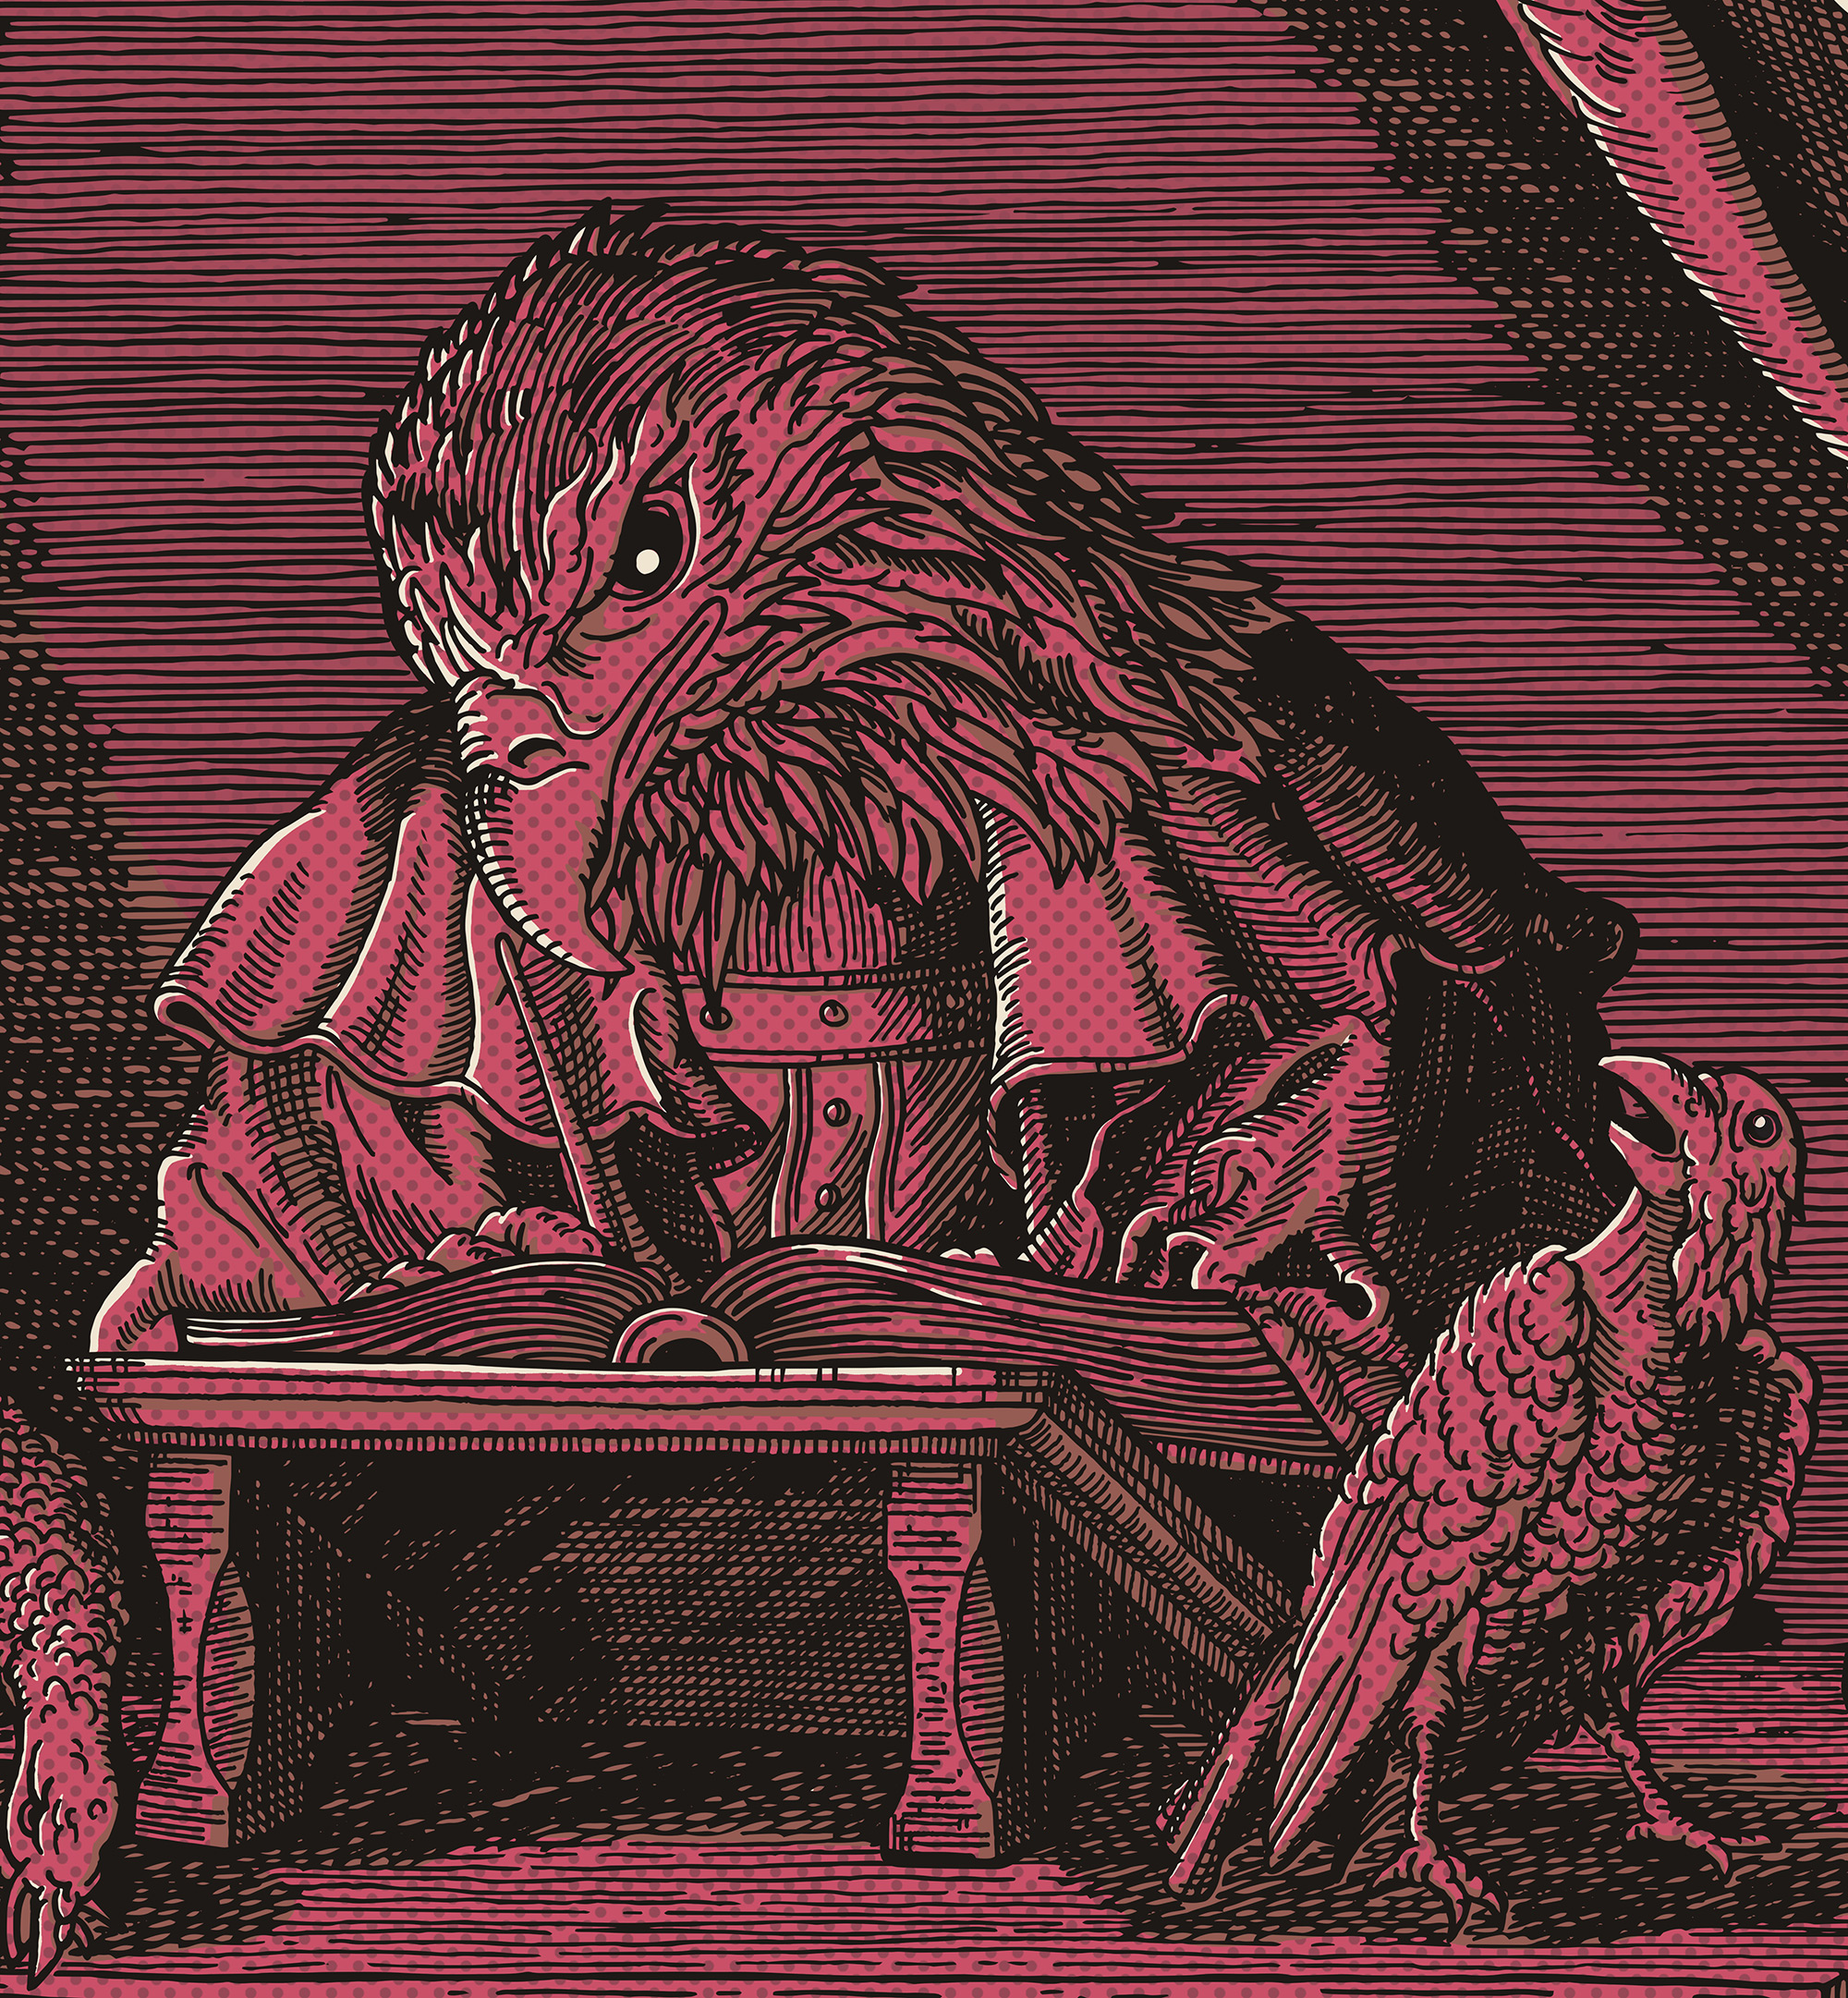 Blood Red Birdman (detail)